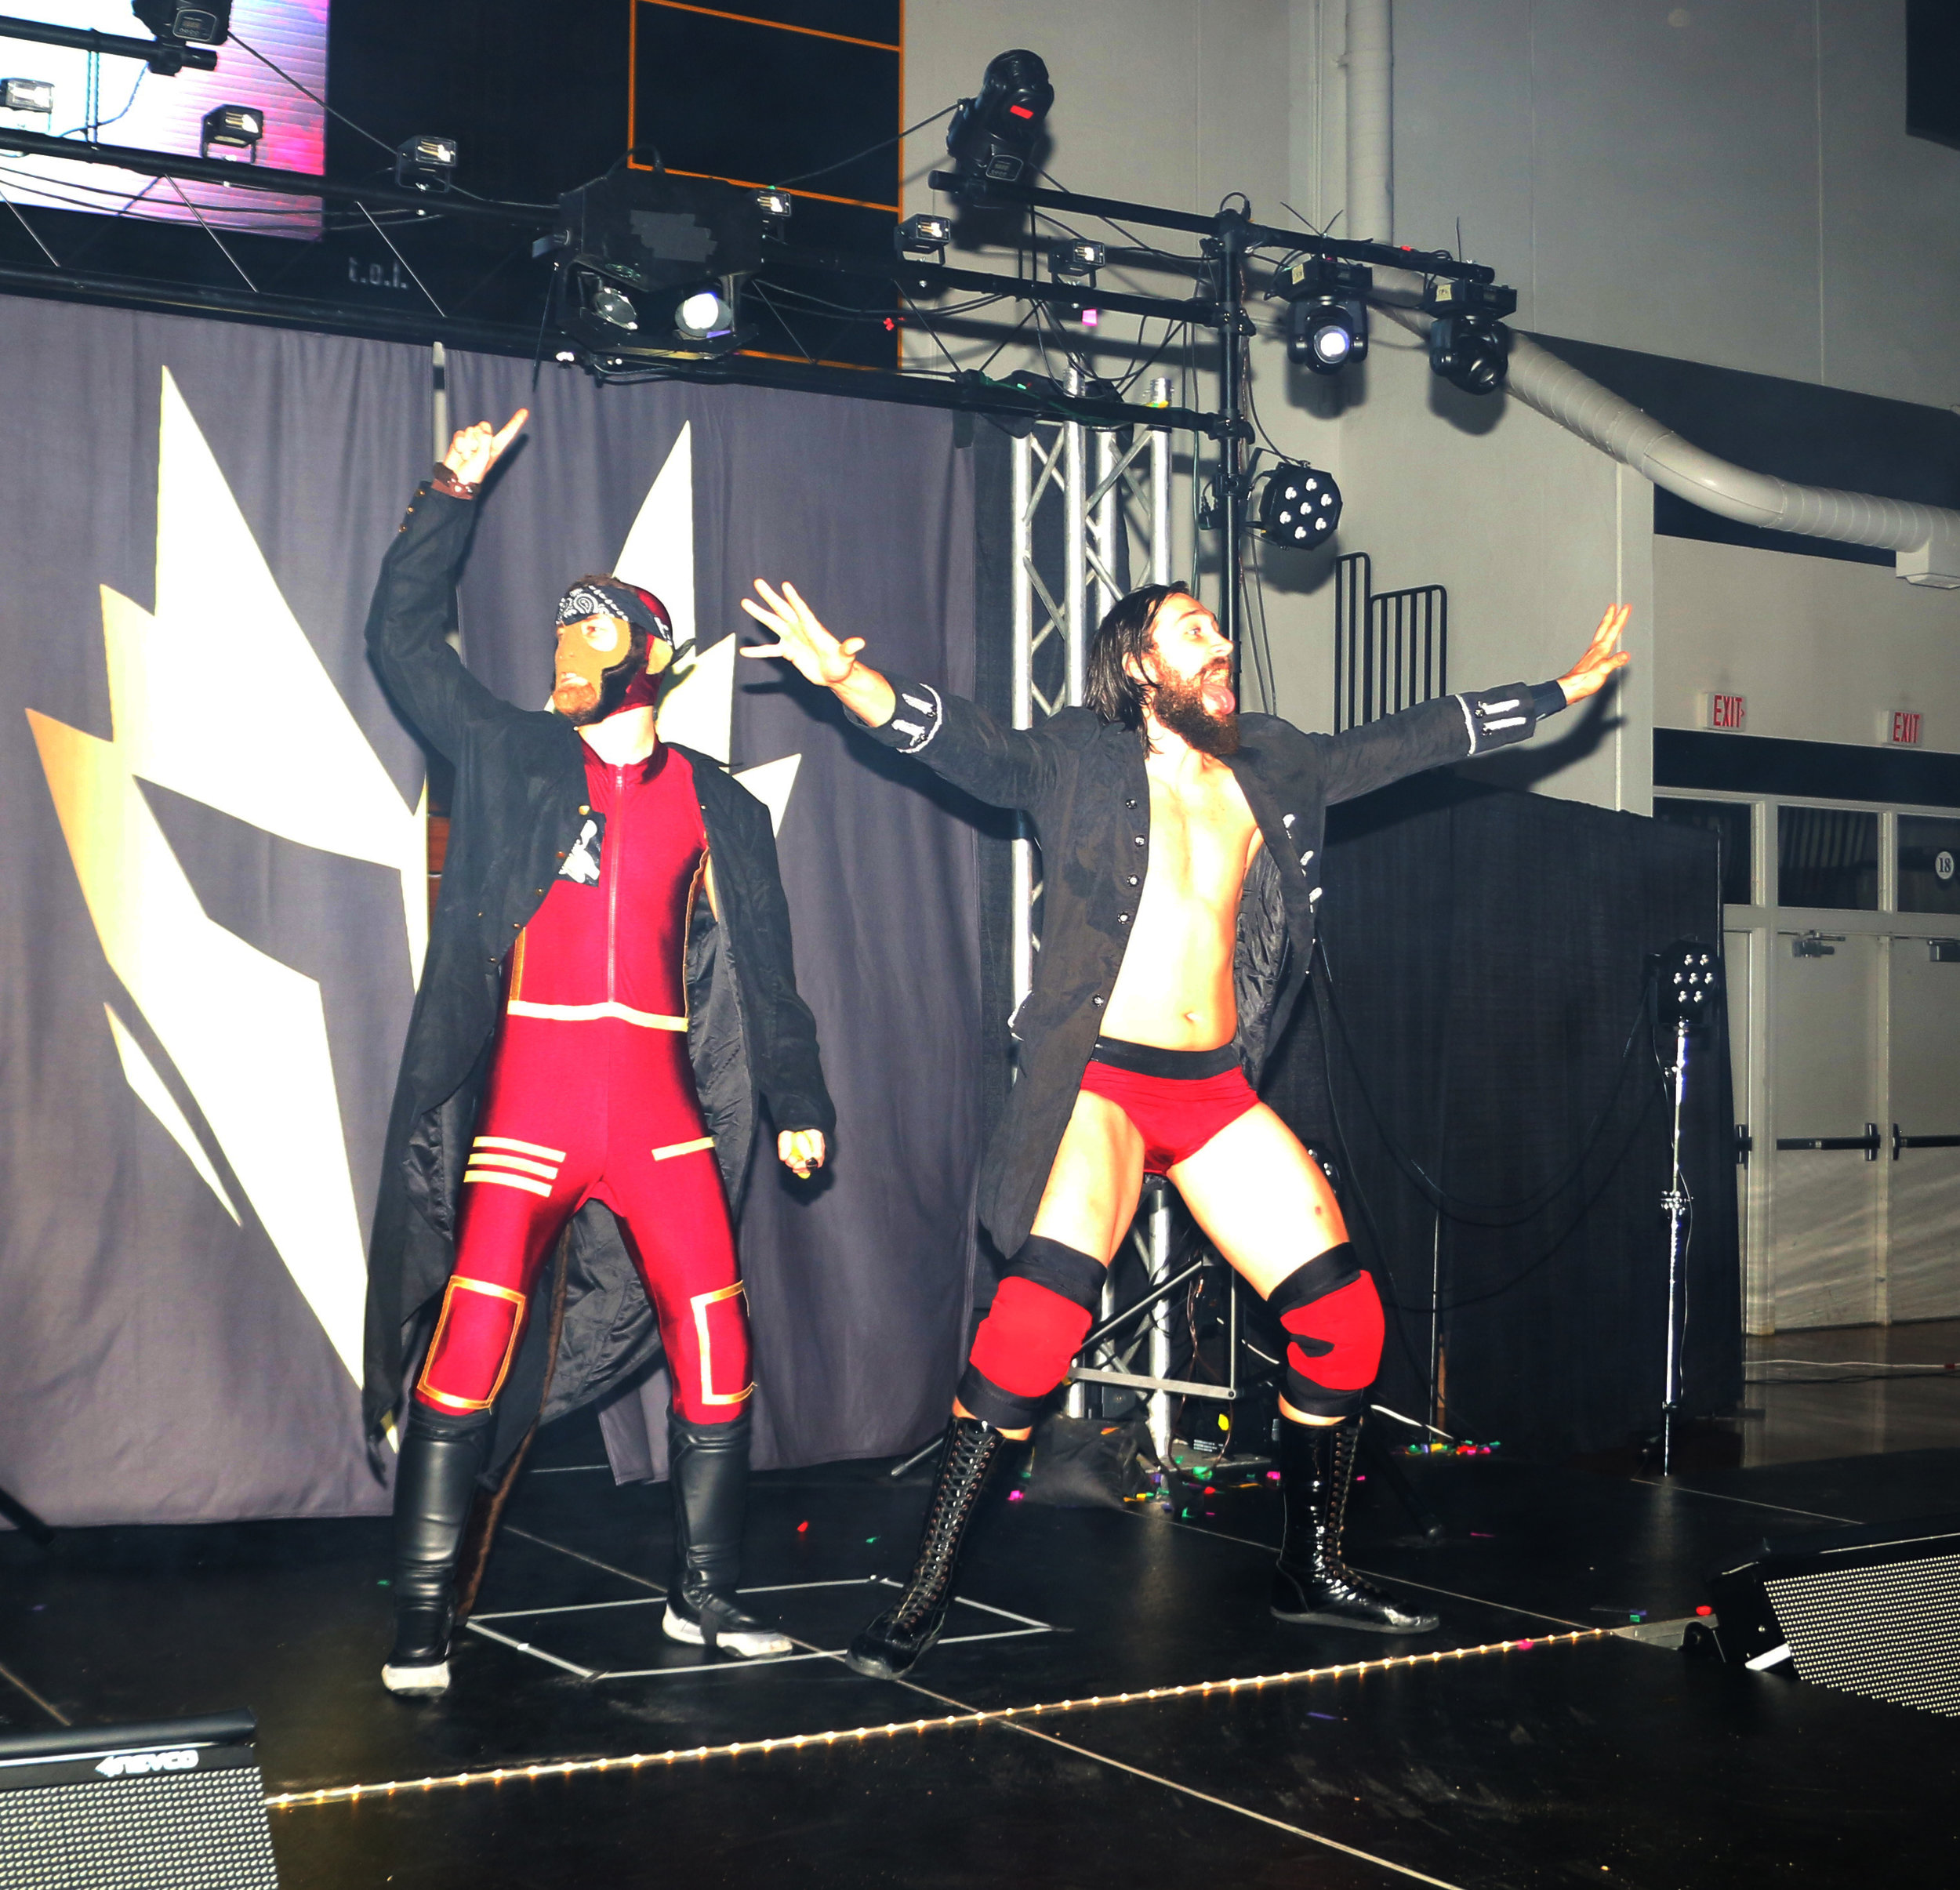 The Space Pirates, Space Monkey, left, and Shane Sabre, enter the arena for the three-way tag team match.